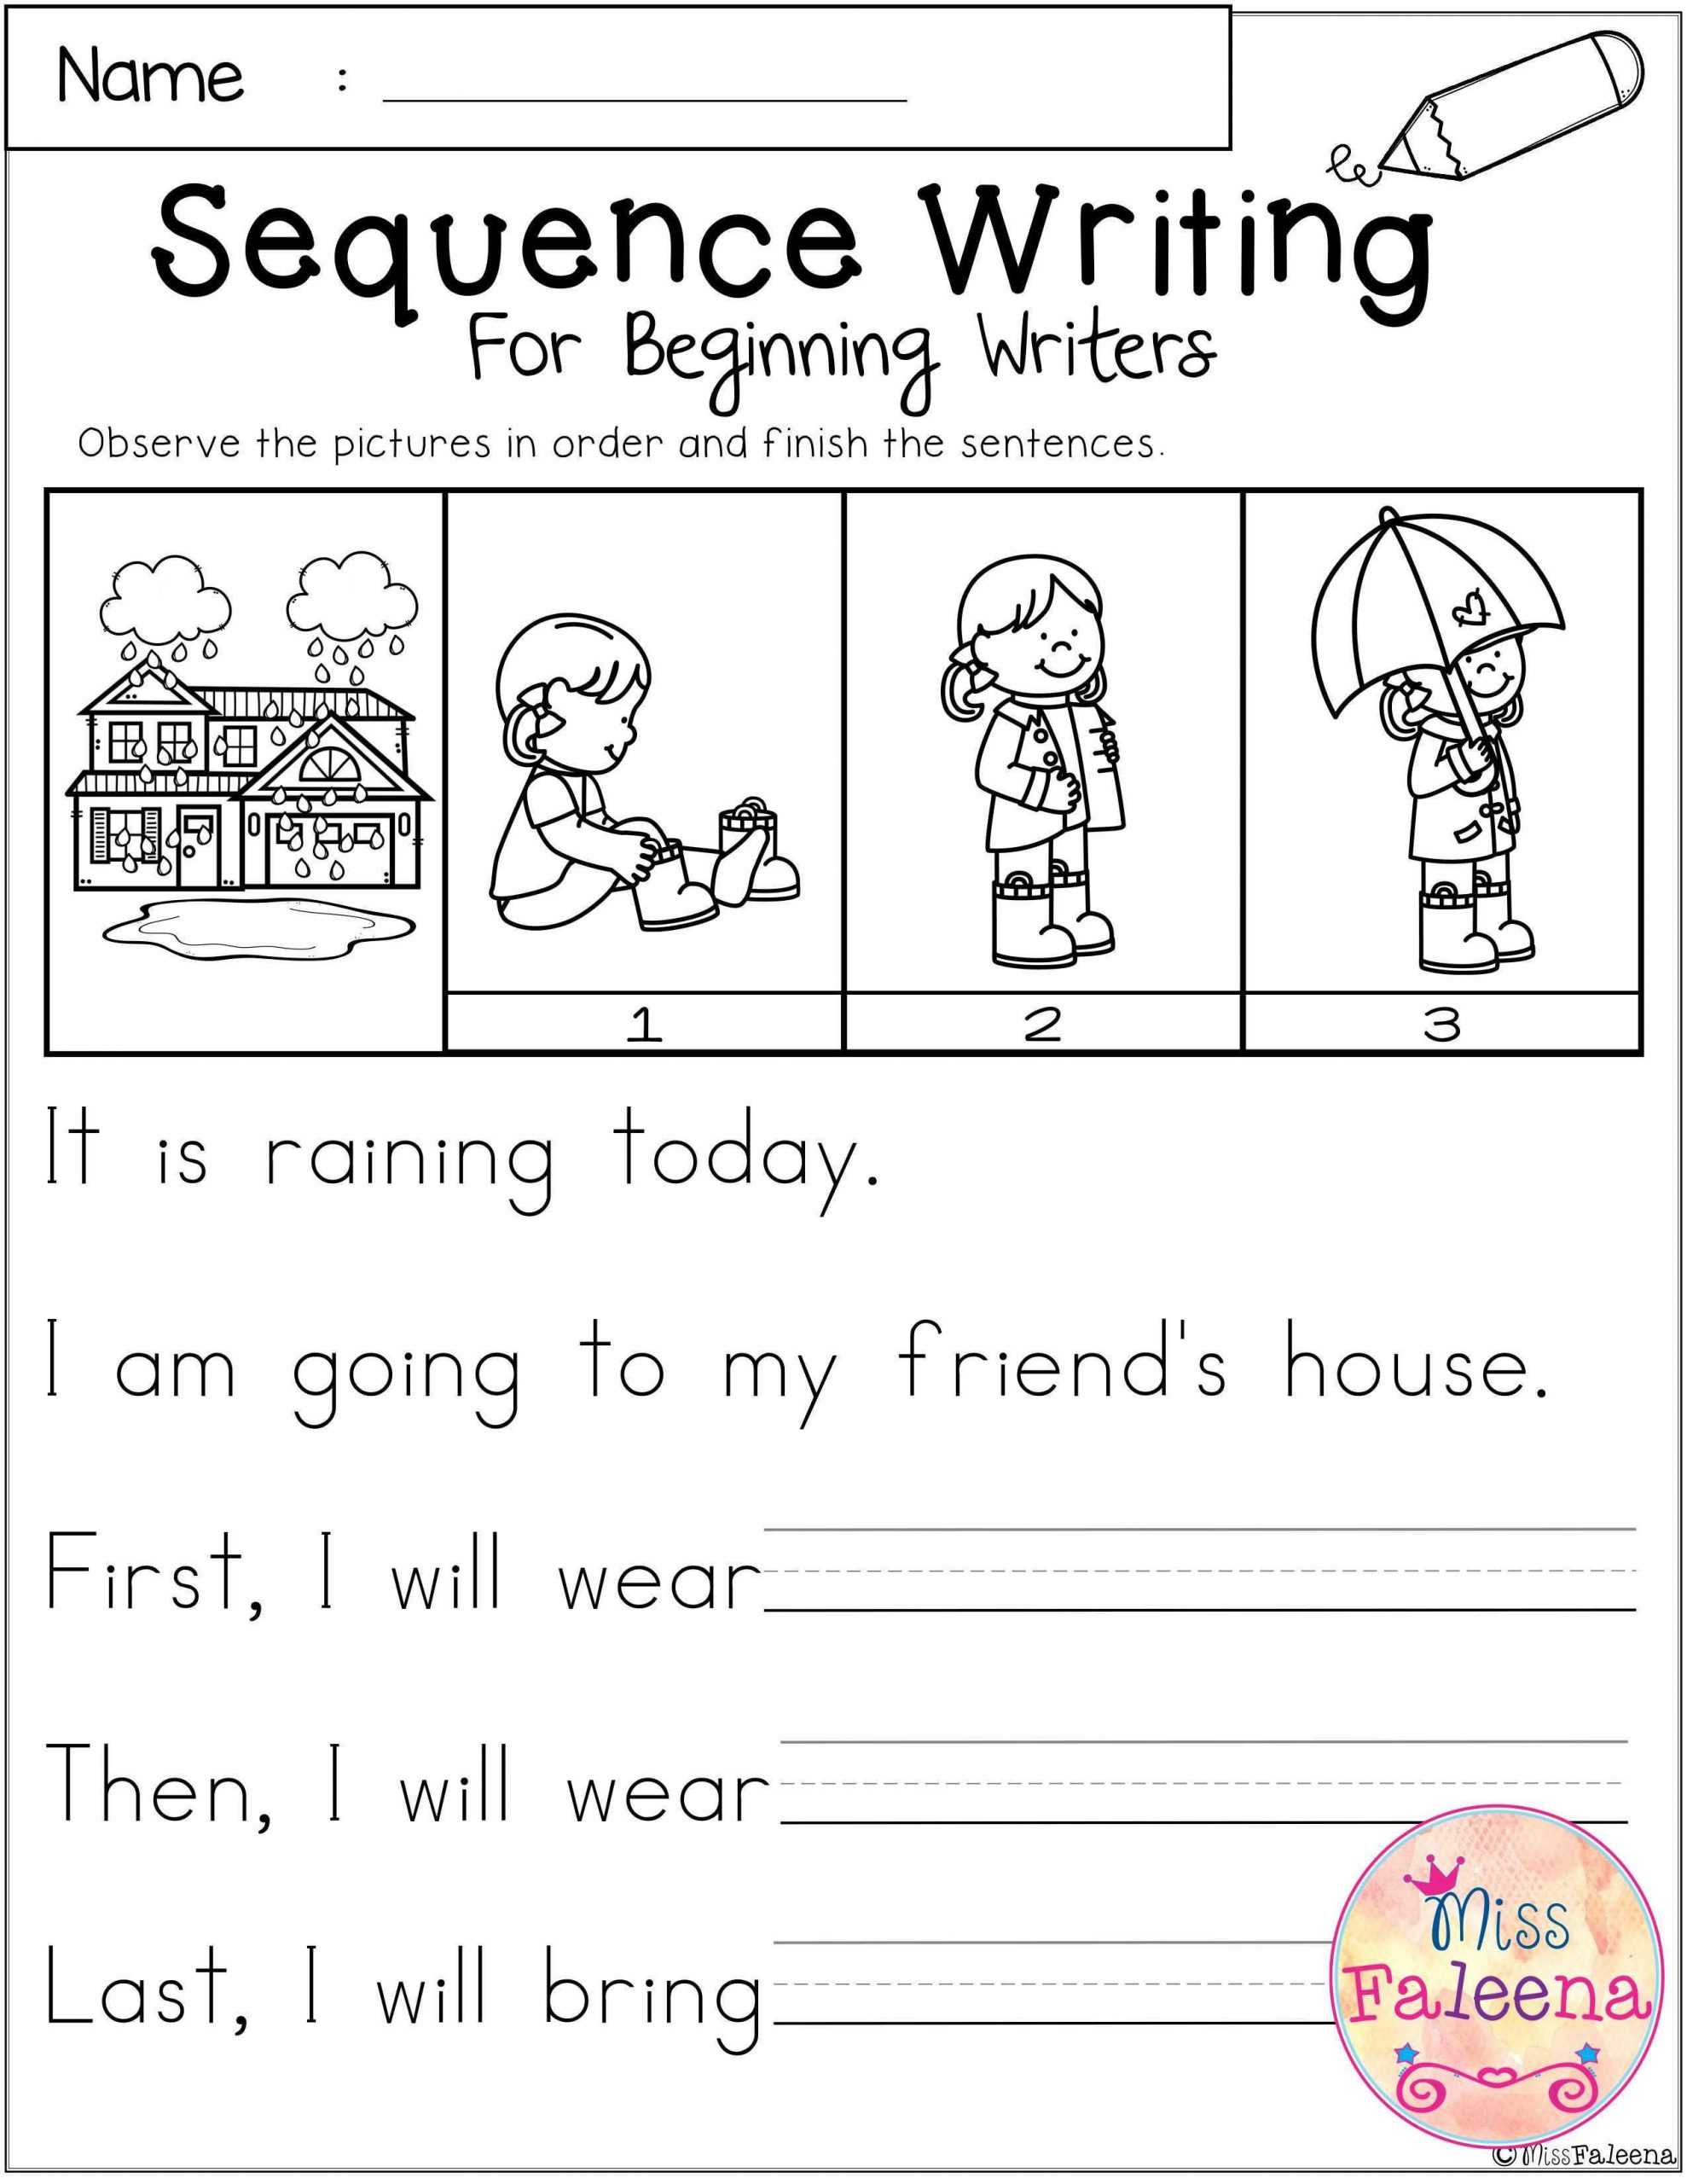 Sequencing Worksheets Middle School March Sequence Writing for Beginning Writers